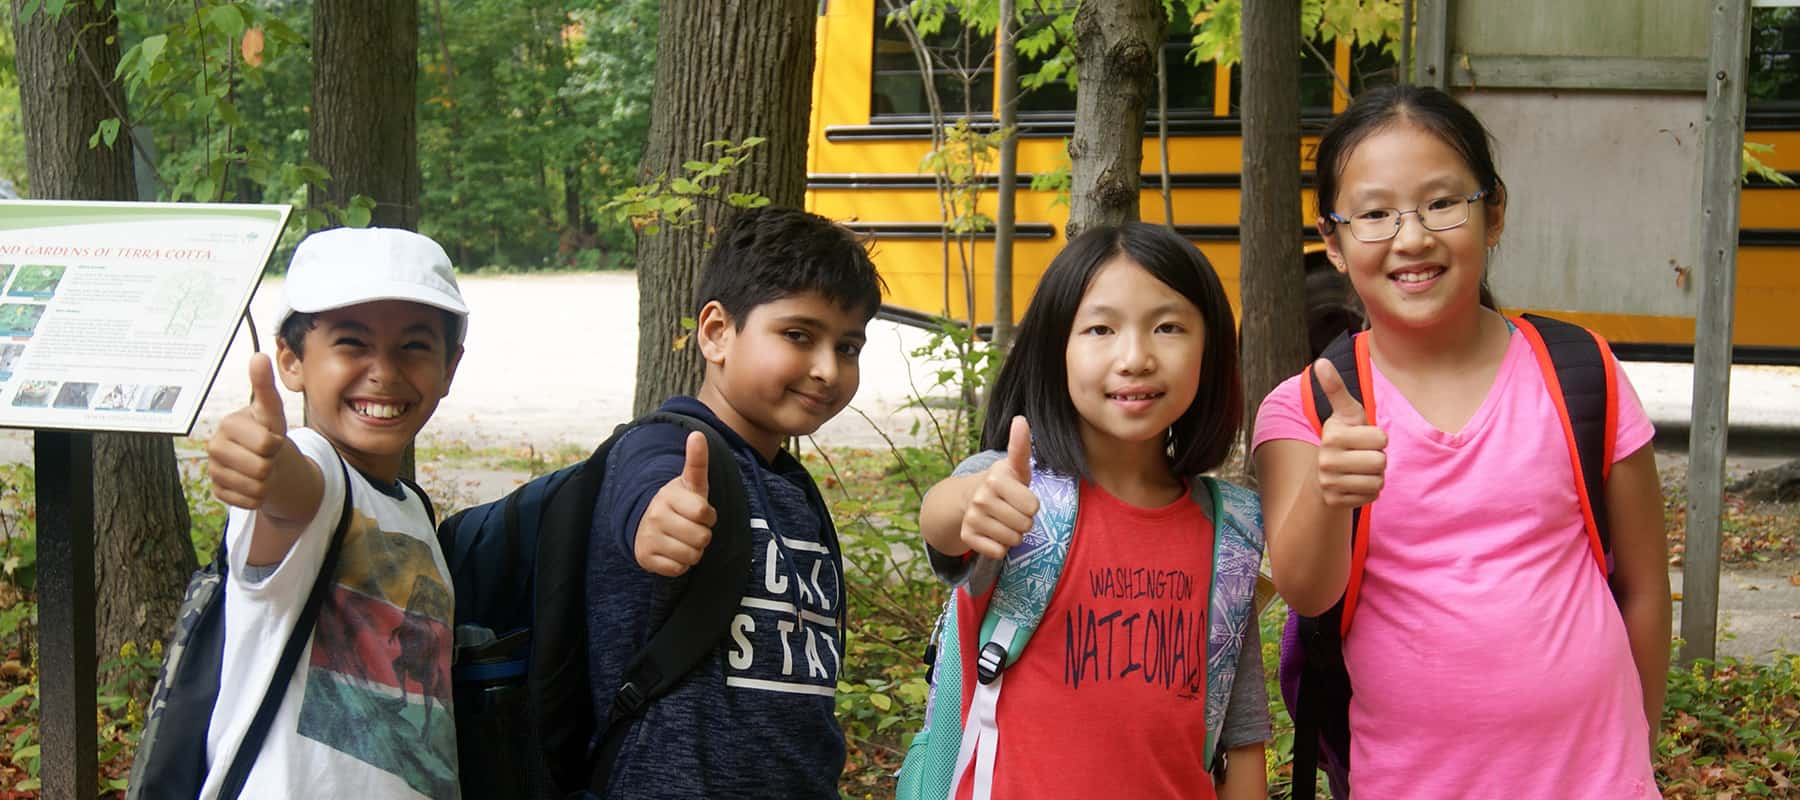 Four young children standing outside the Education Centre at Terra Cotta, in front of a school bus, giving thumbs ups.